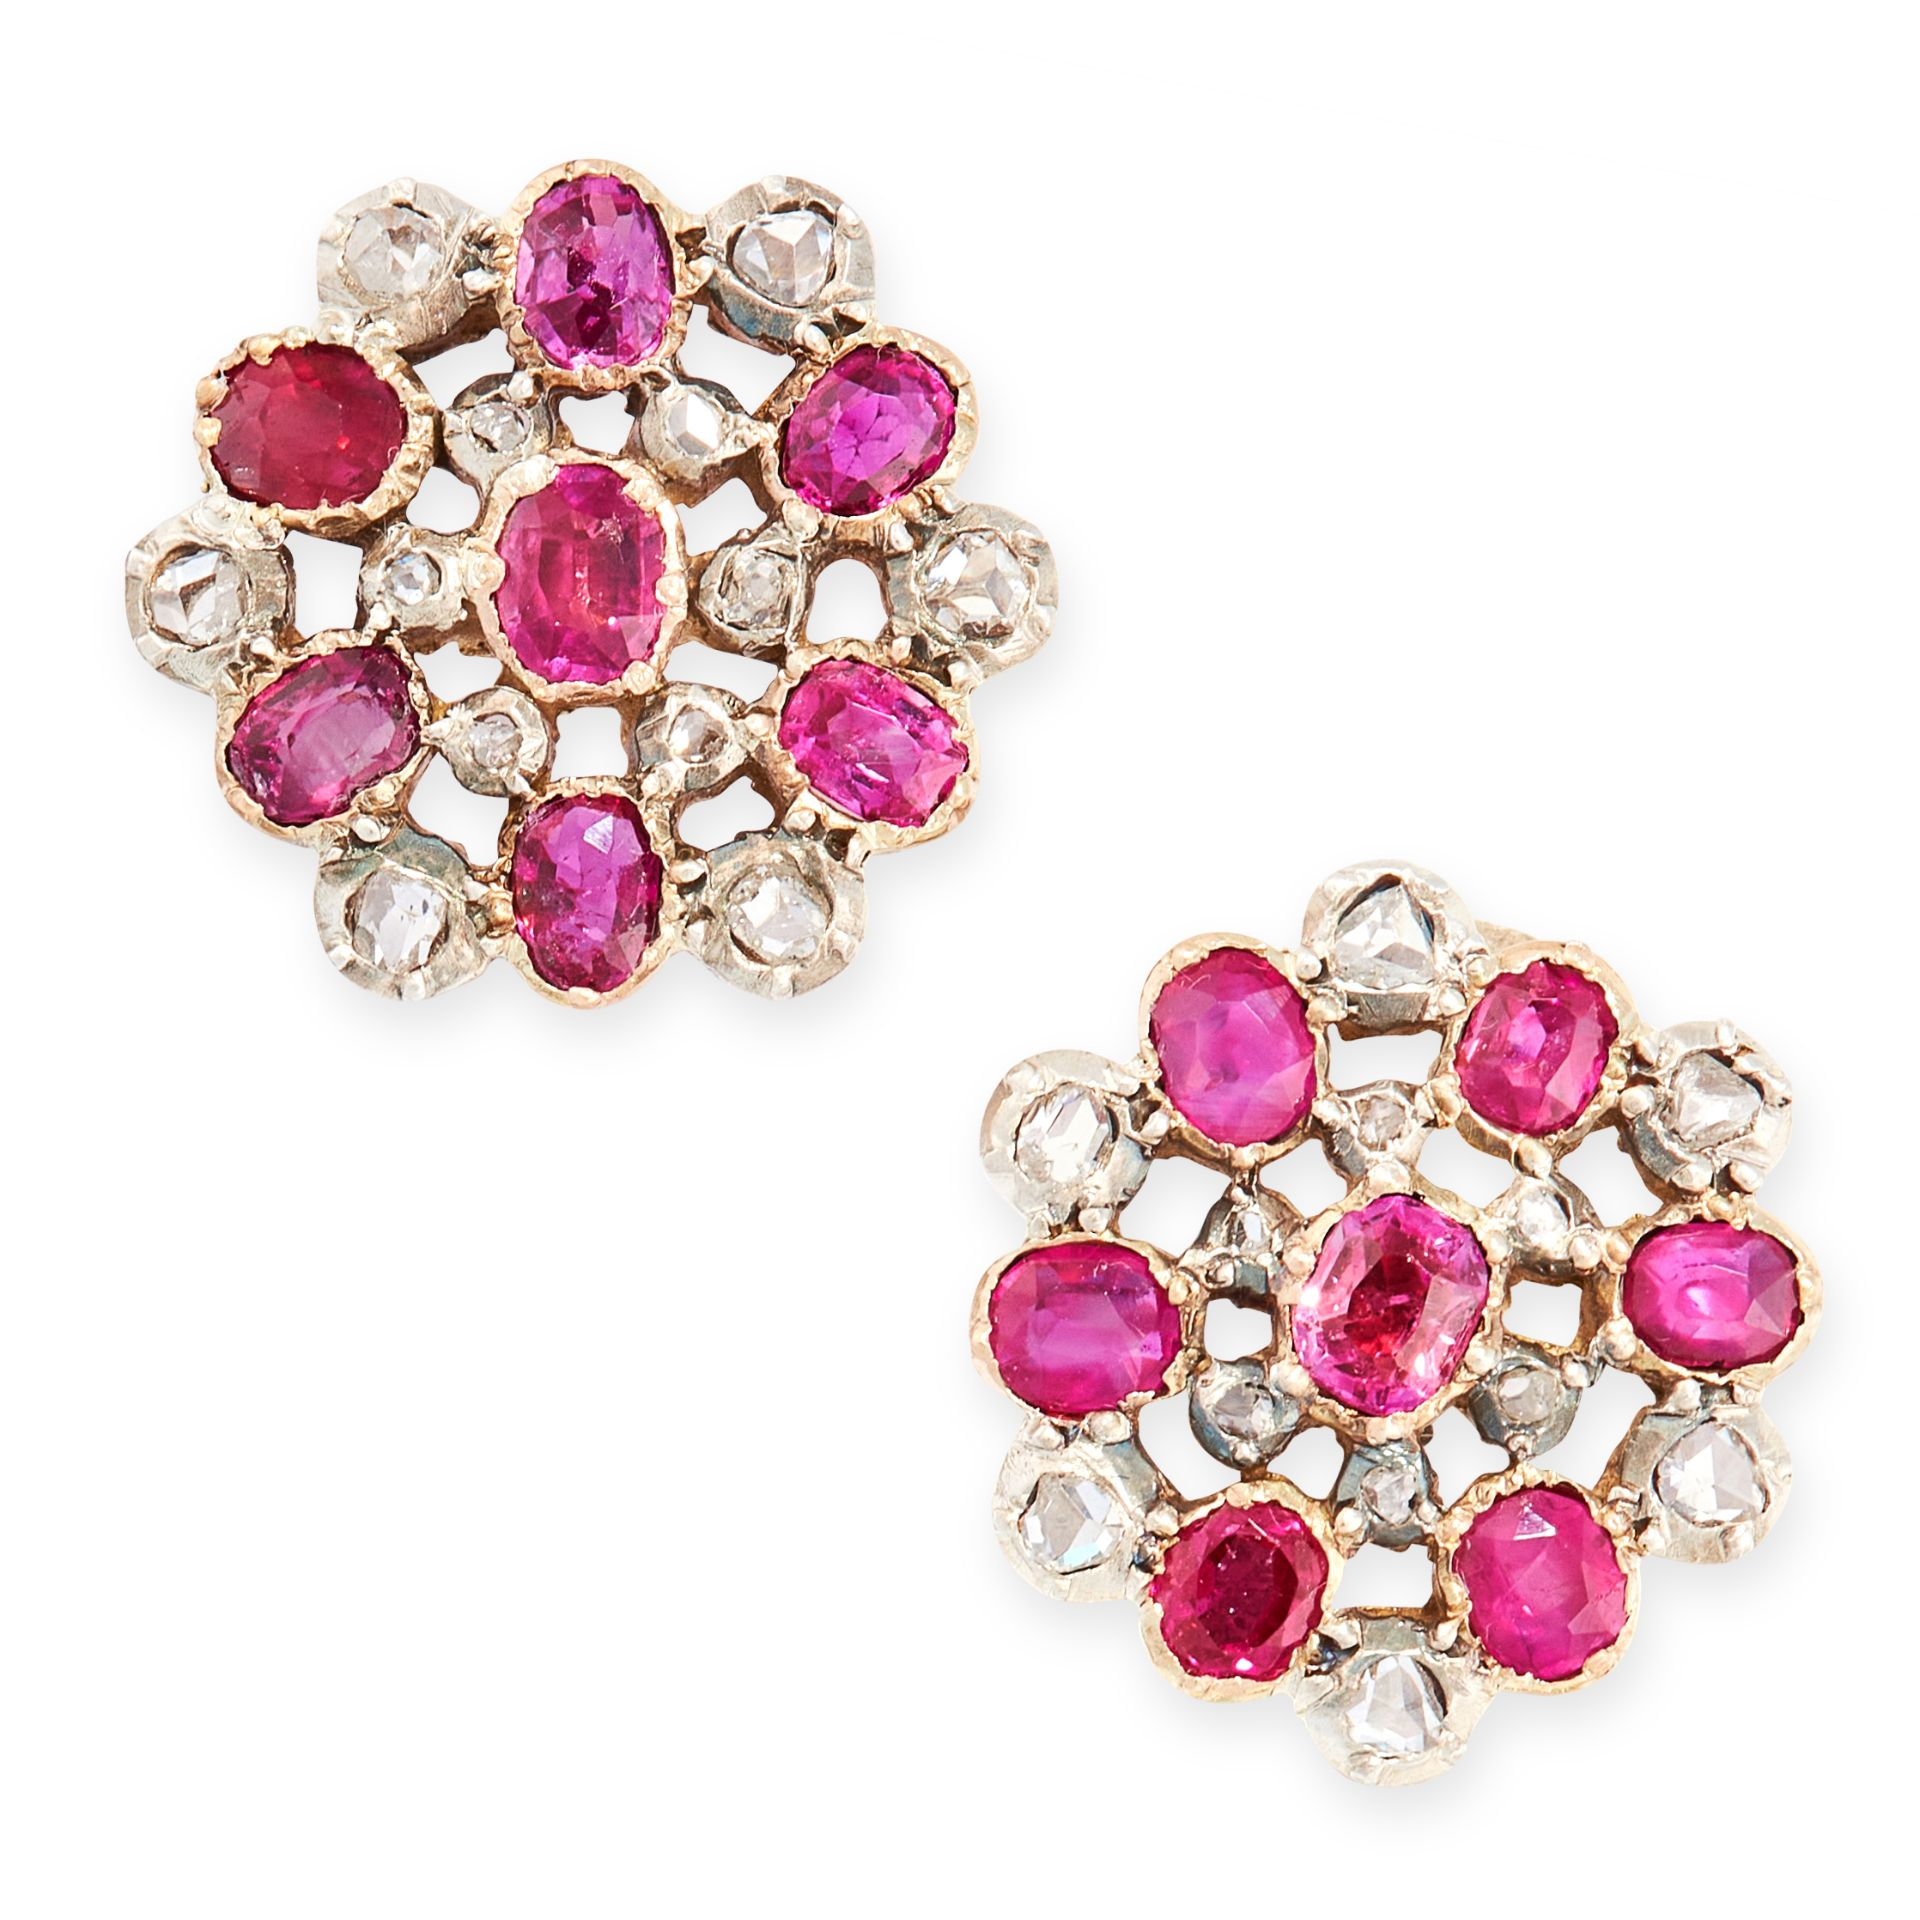 A PAIR OF ANTIQUE RUBY AND DIAMOND STUD EARRINGS, 19TH CENTURY in high carat yellow gold and silver,